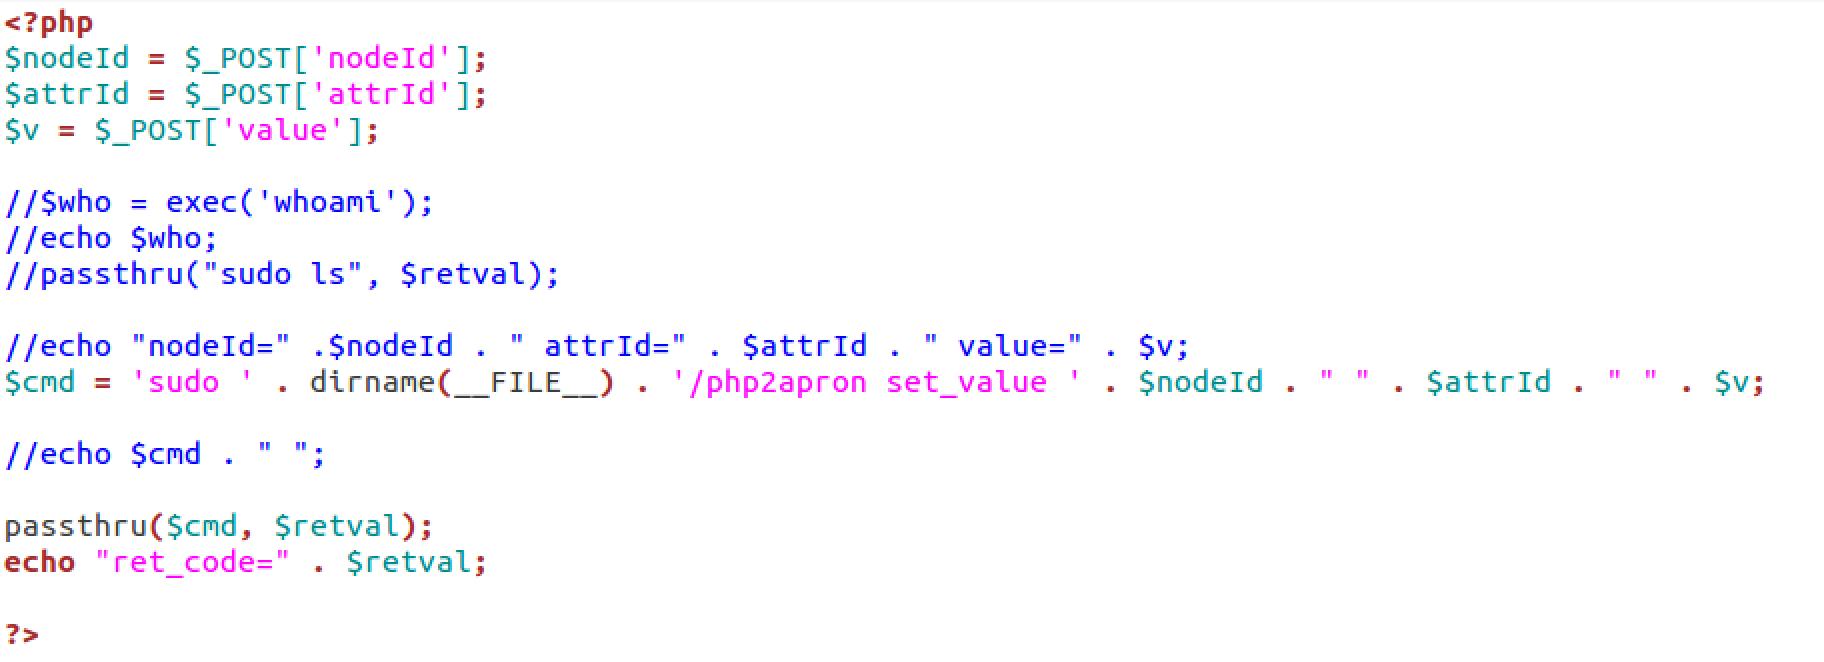 source code of /set_dev_value.php vulnerability